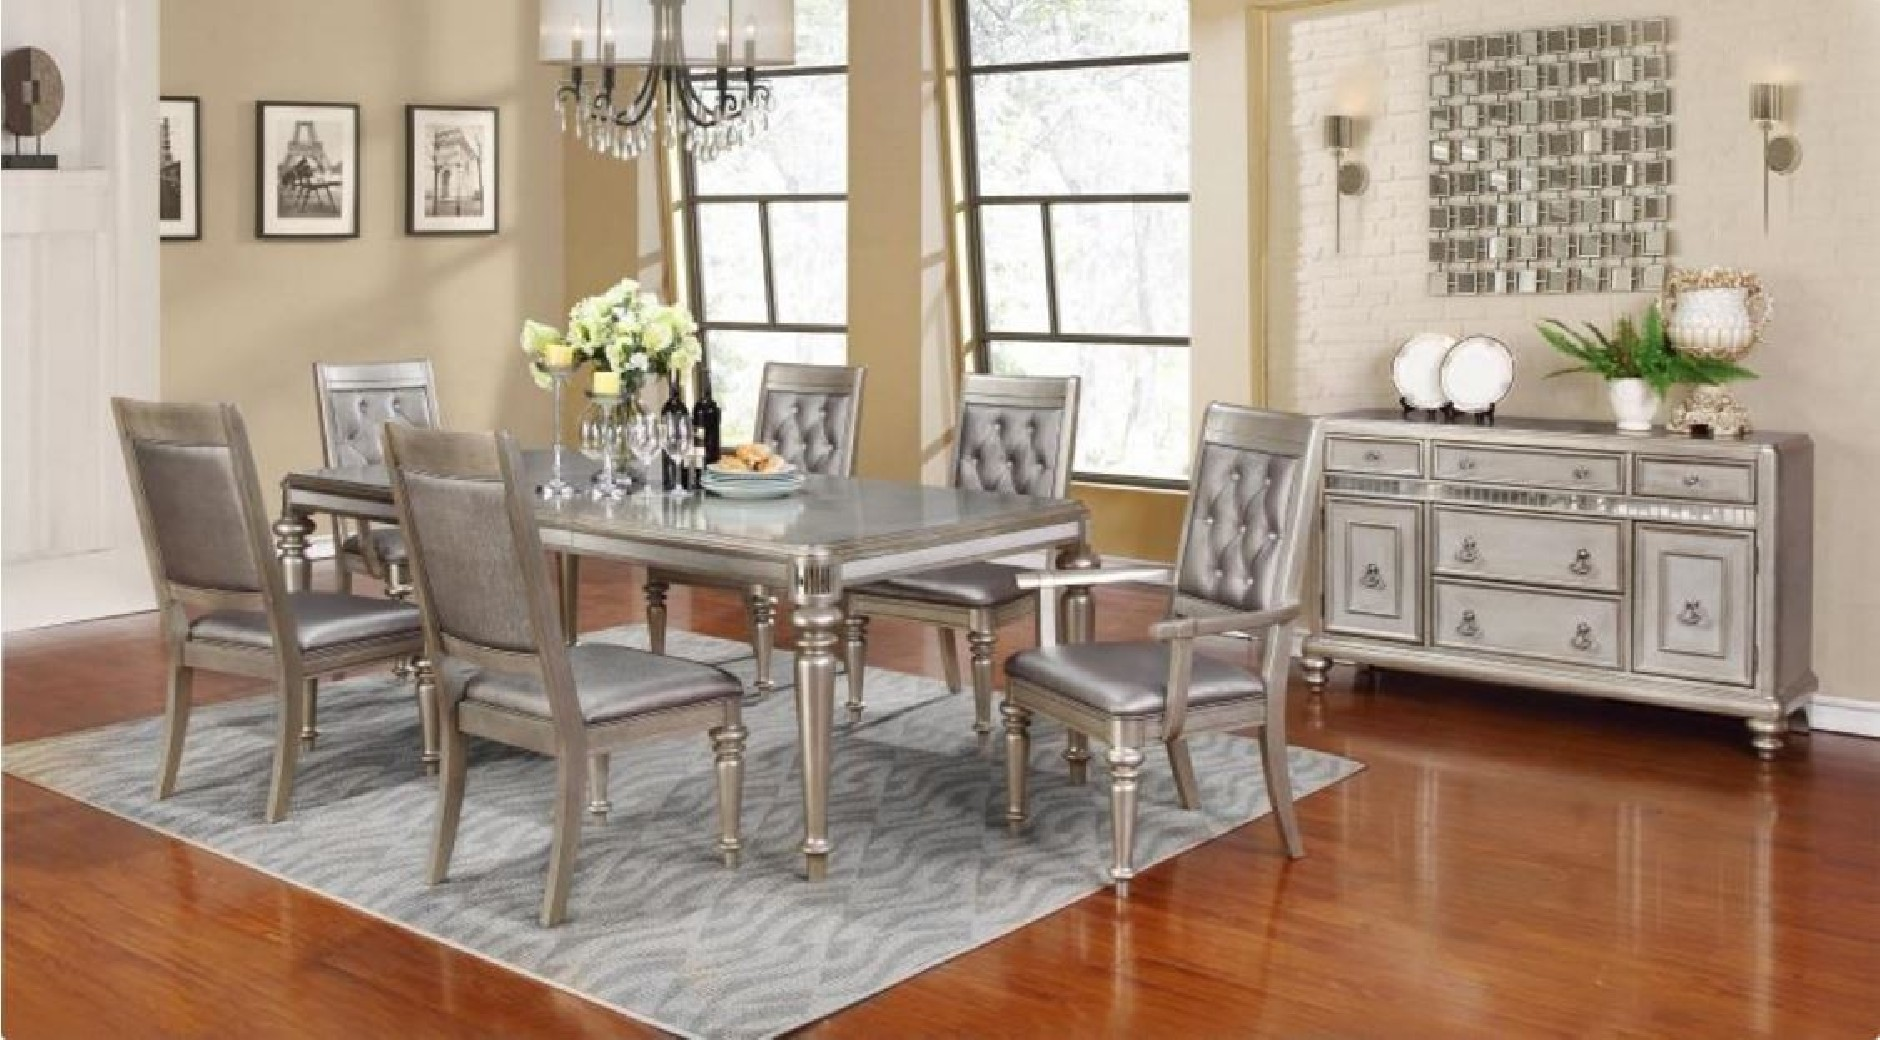 Incredible 106471 Bling Game Metallic Platinum Dining Set Leg Table Home Interior And Landscaping Ponolsignezvosmurscom